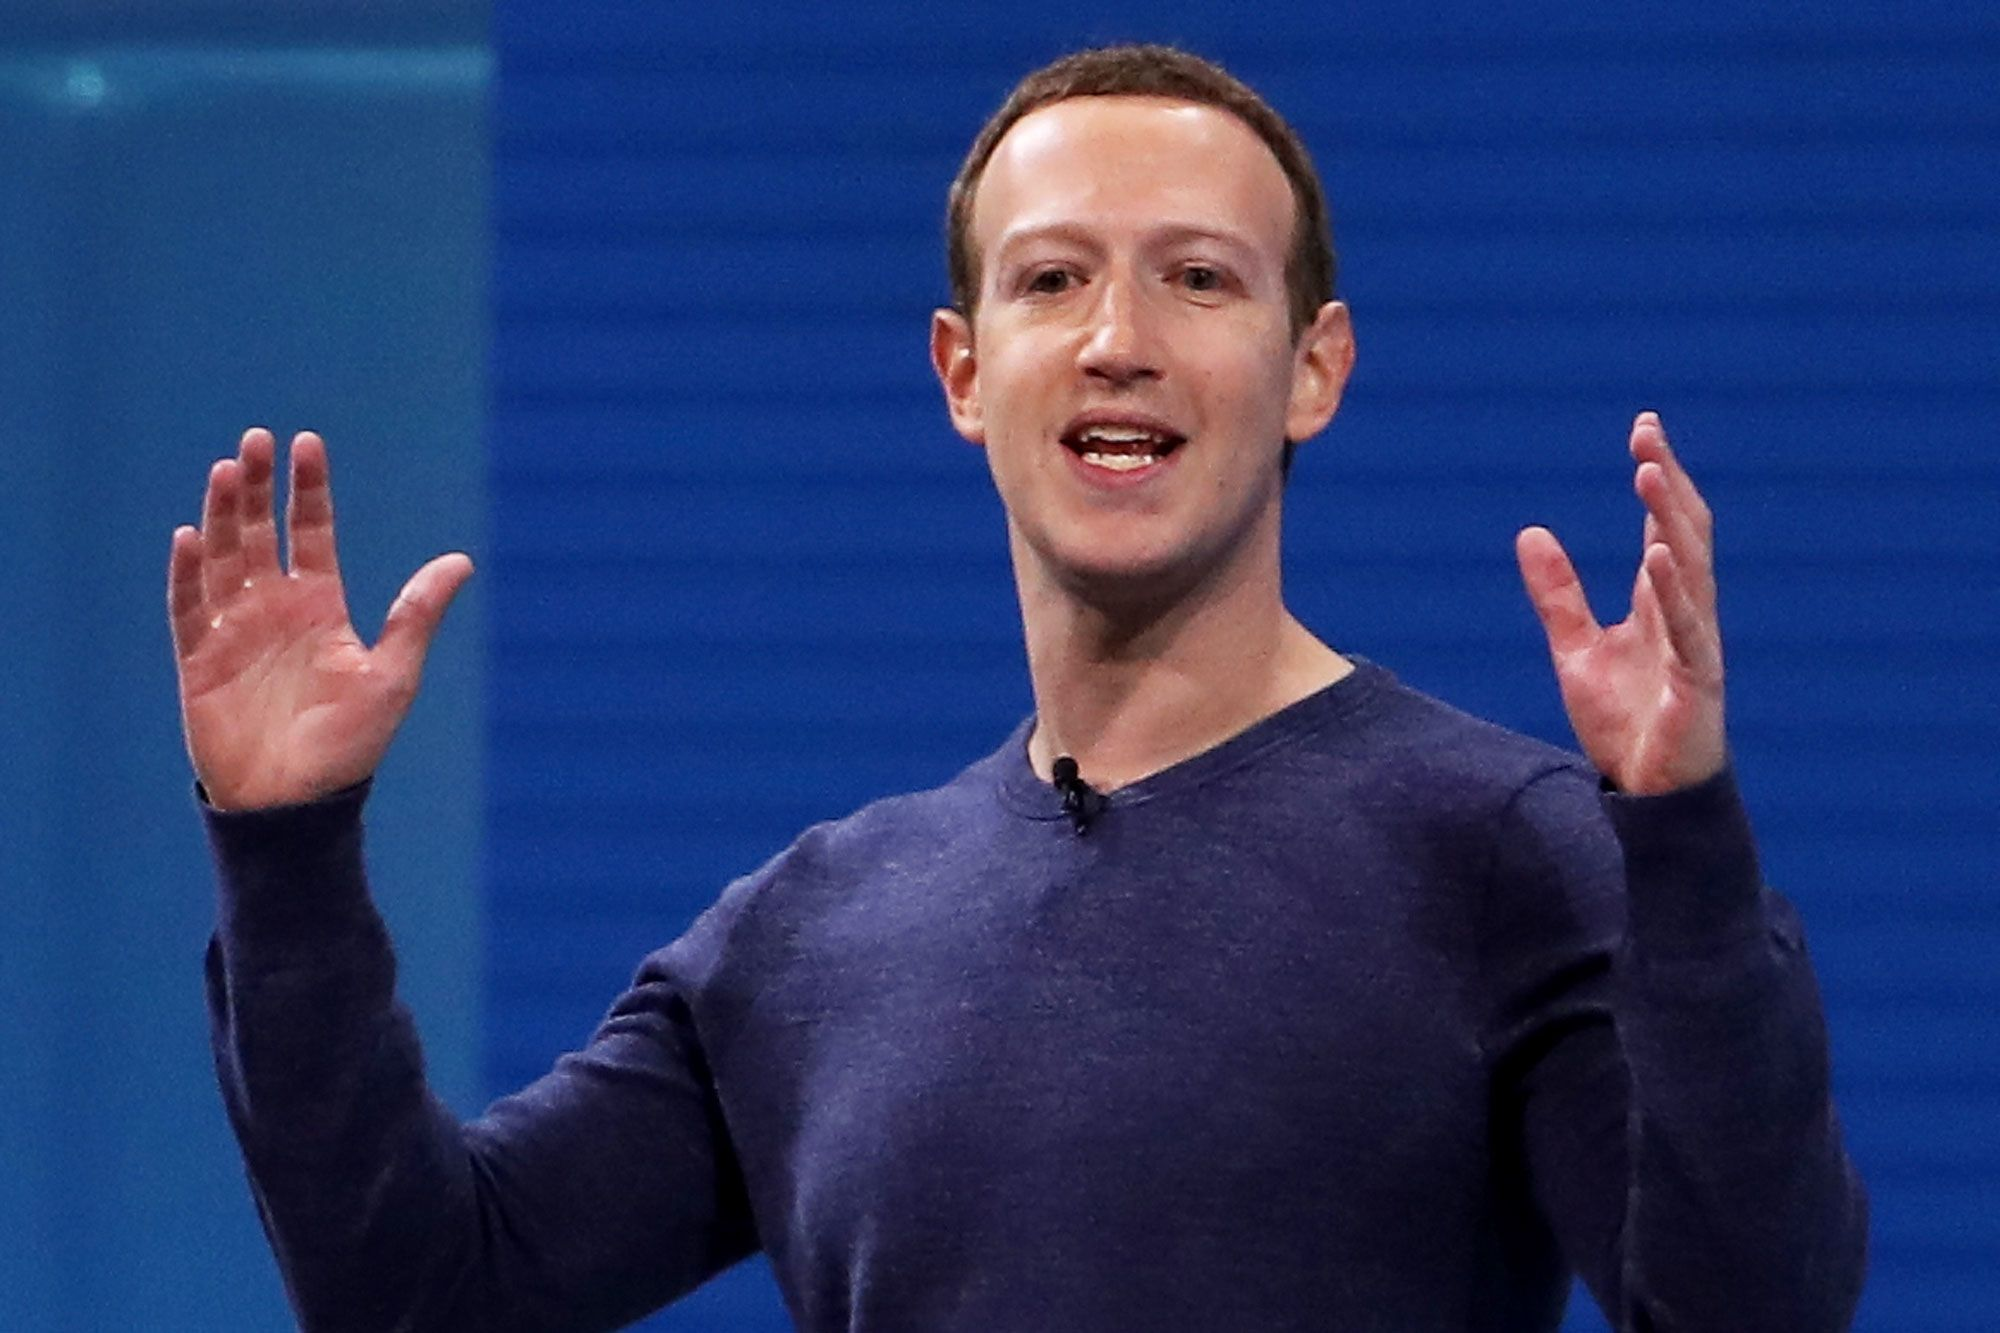 Facebook releases new research report for independent oversight board